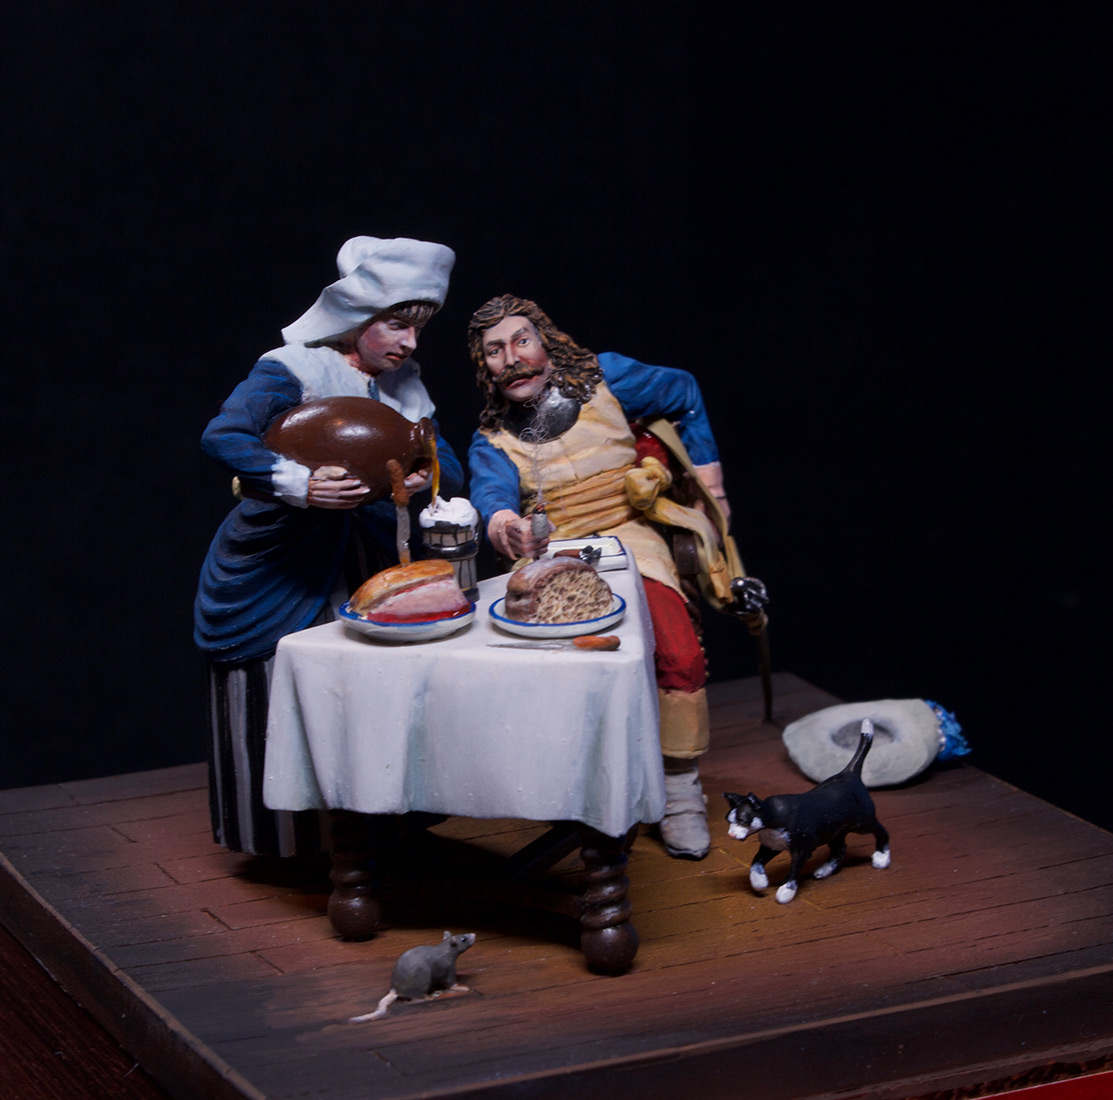 Dioramas and Vignettes: Waitress and cavalier, photo #2